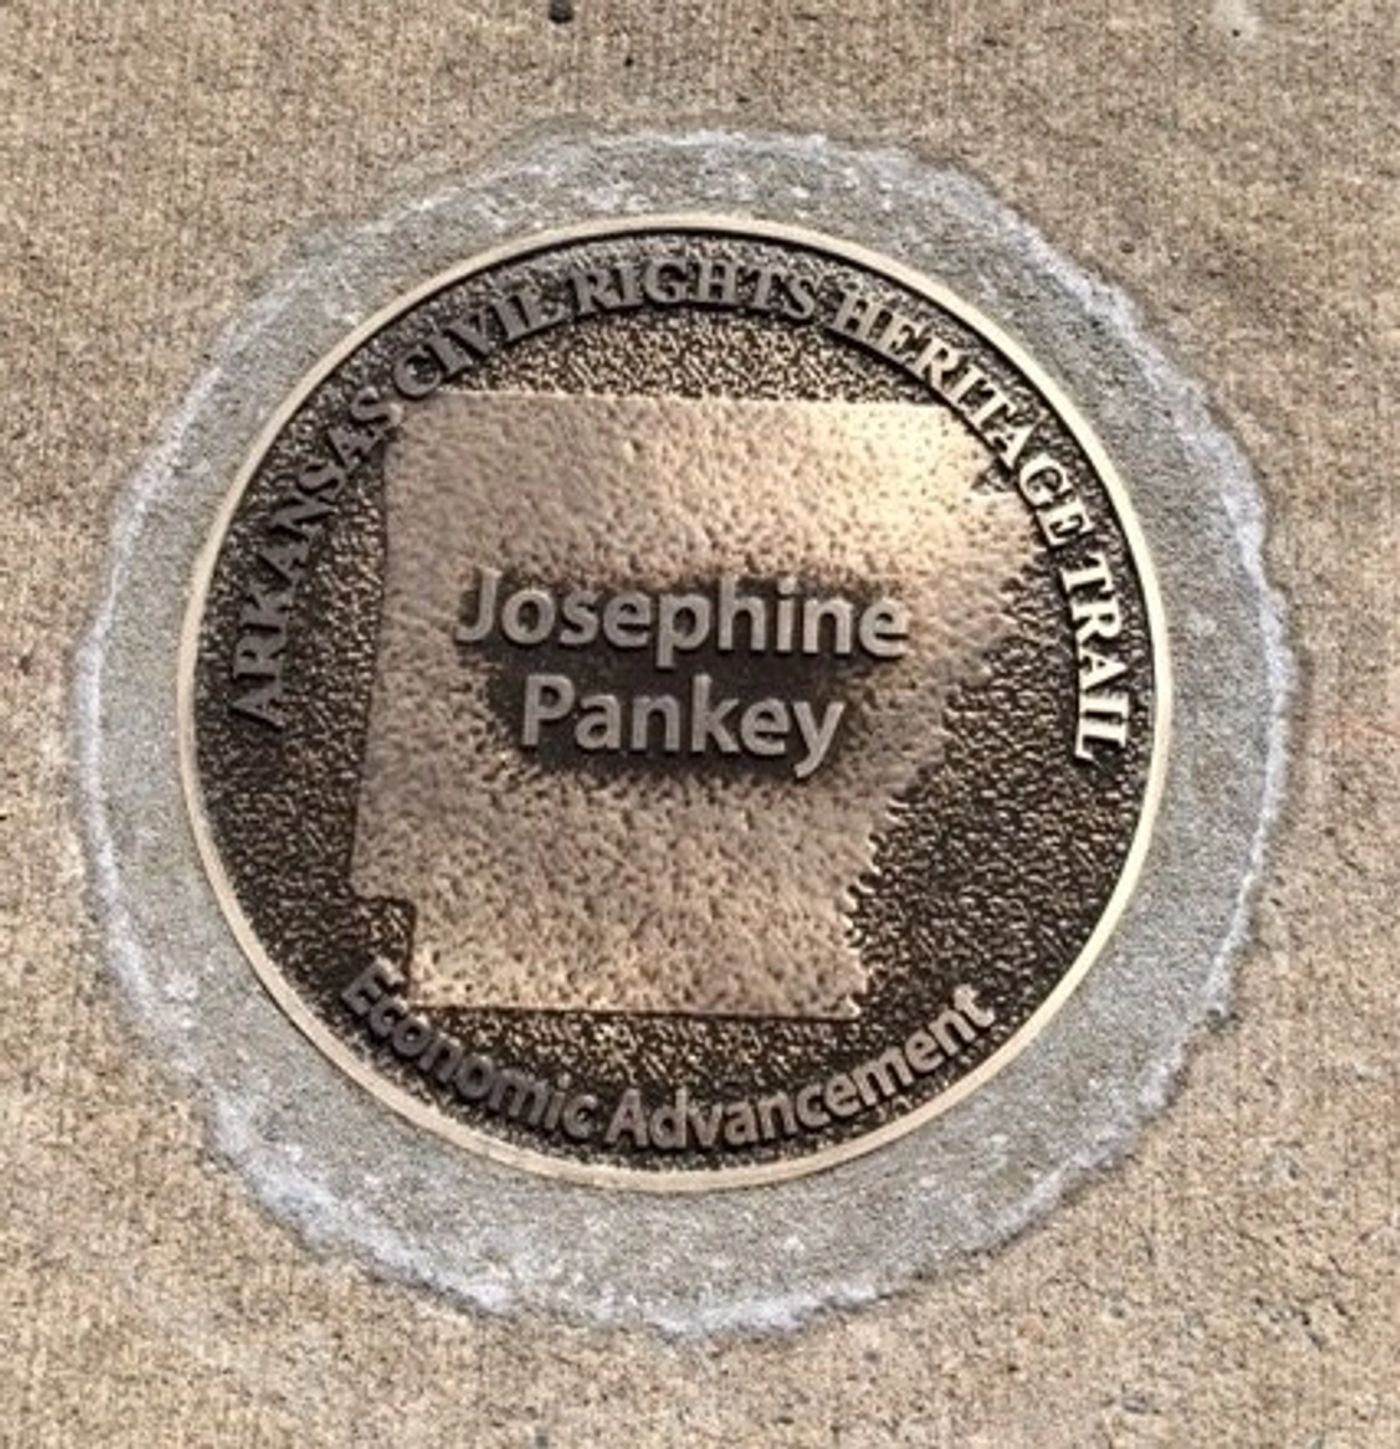 A bronze marker commemorates the contributions of Josephine Pankey to Arkansas and African American communities.